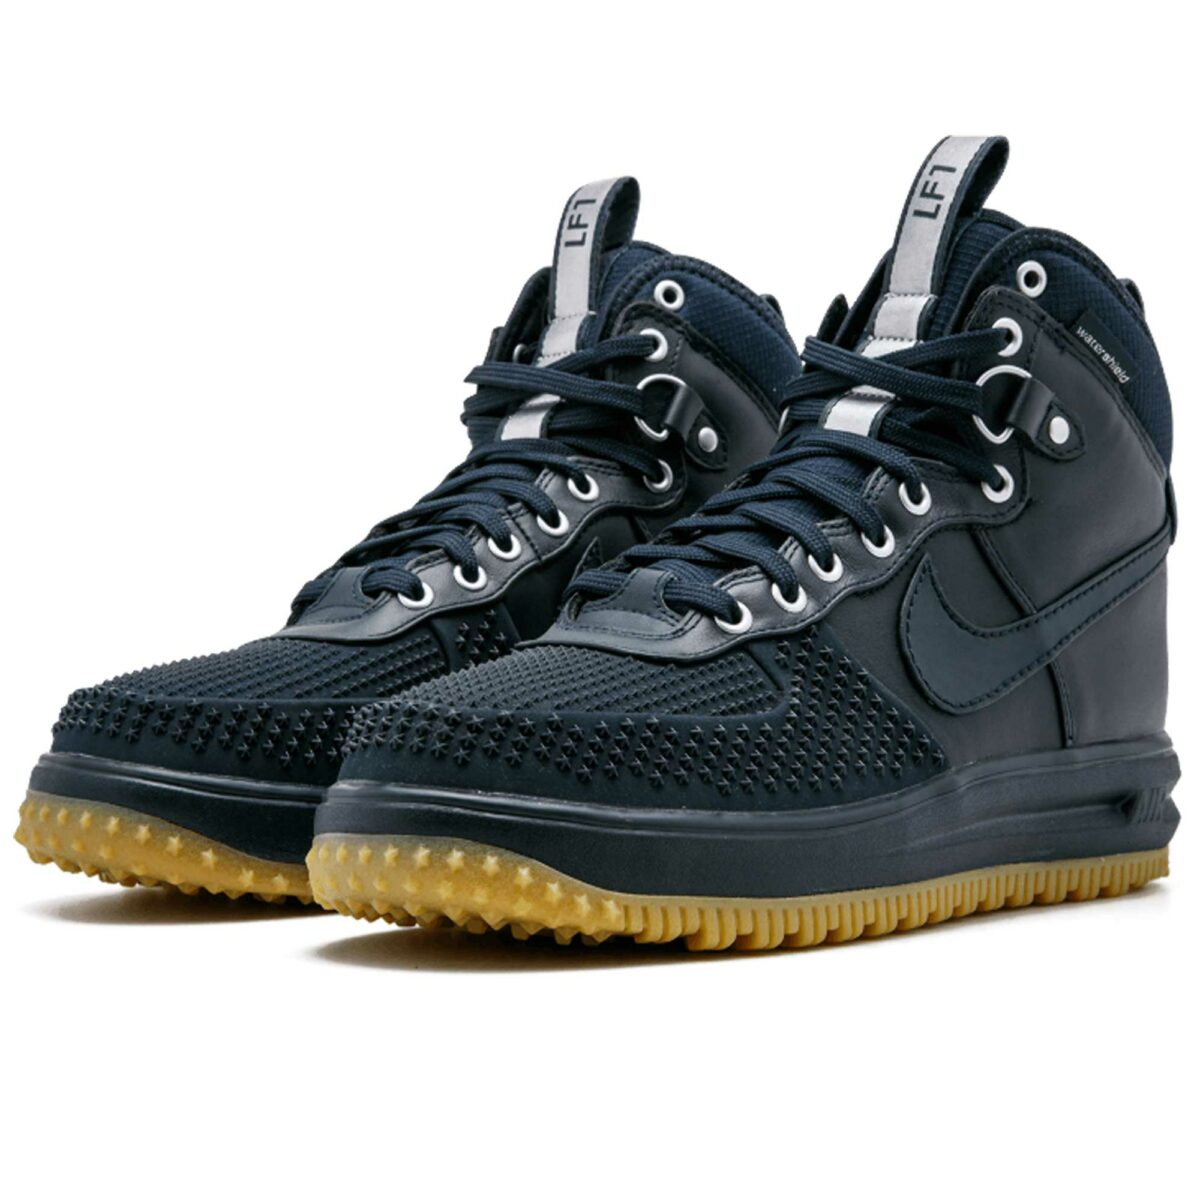 nike lunar force 1 duckboot dark obsidian 805899_400 купить